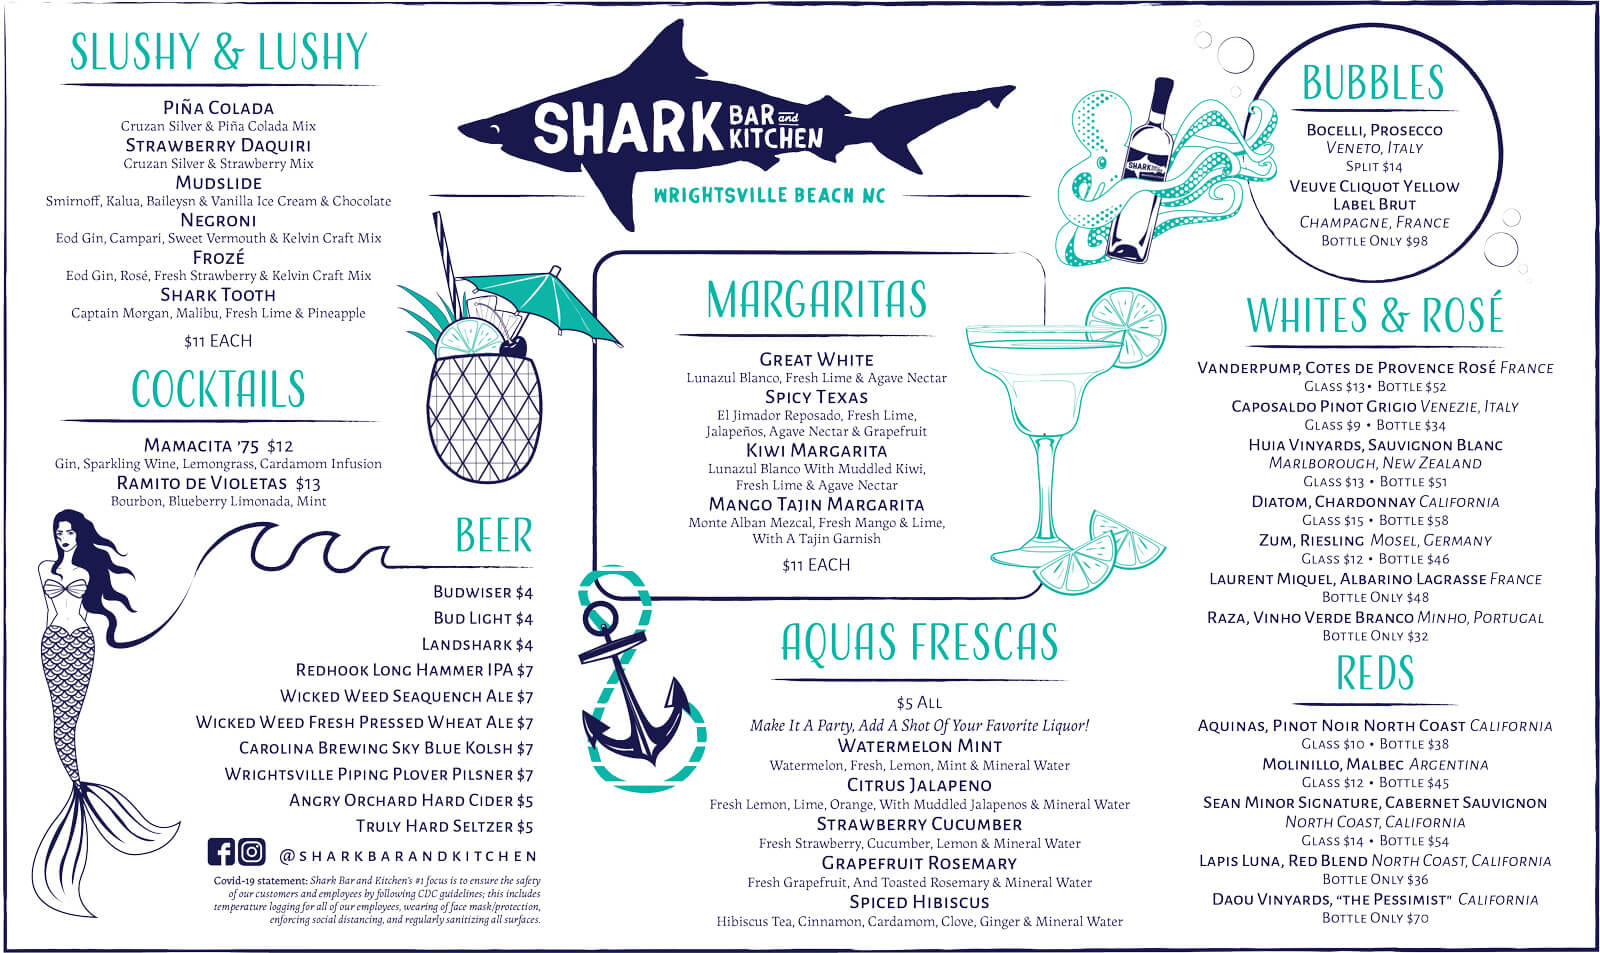 Shark Bar Summer 2021 Drink Menu